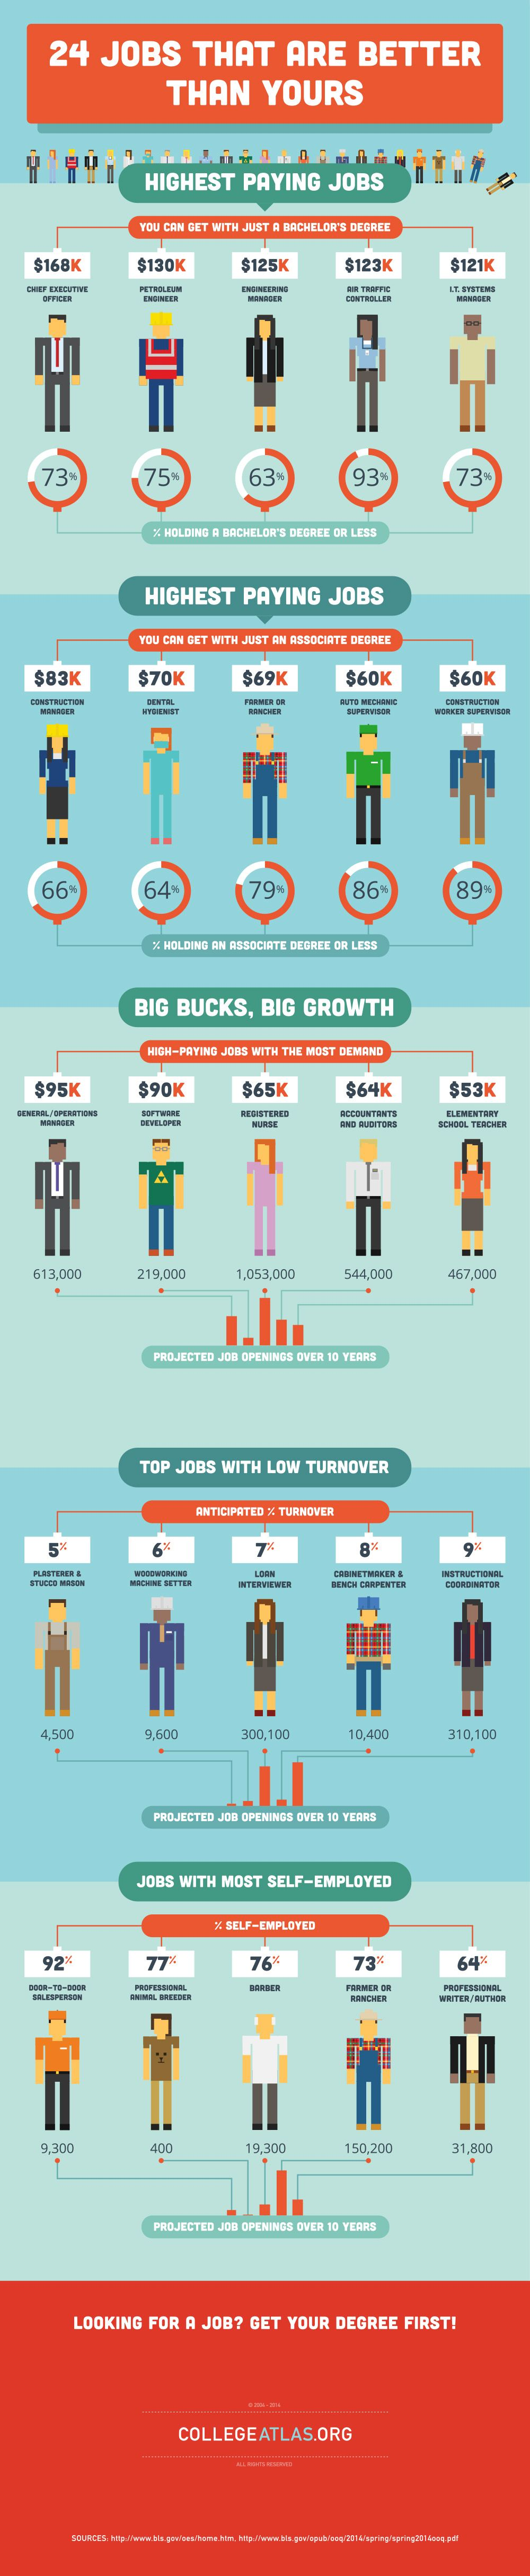 the highest paying jobs that don t require a college degree interesting statistics on highest paying jobs jobs in high demand and jobs lowest turnover they might not be what you think